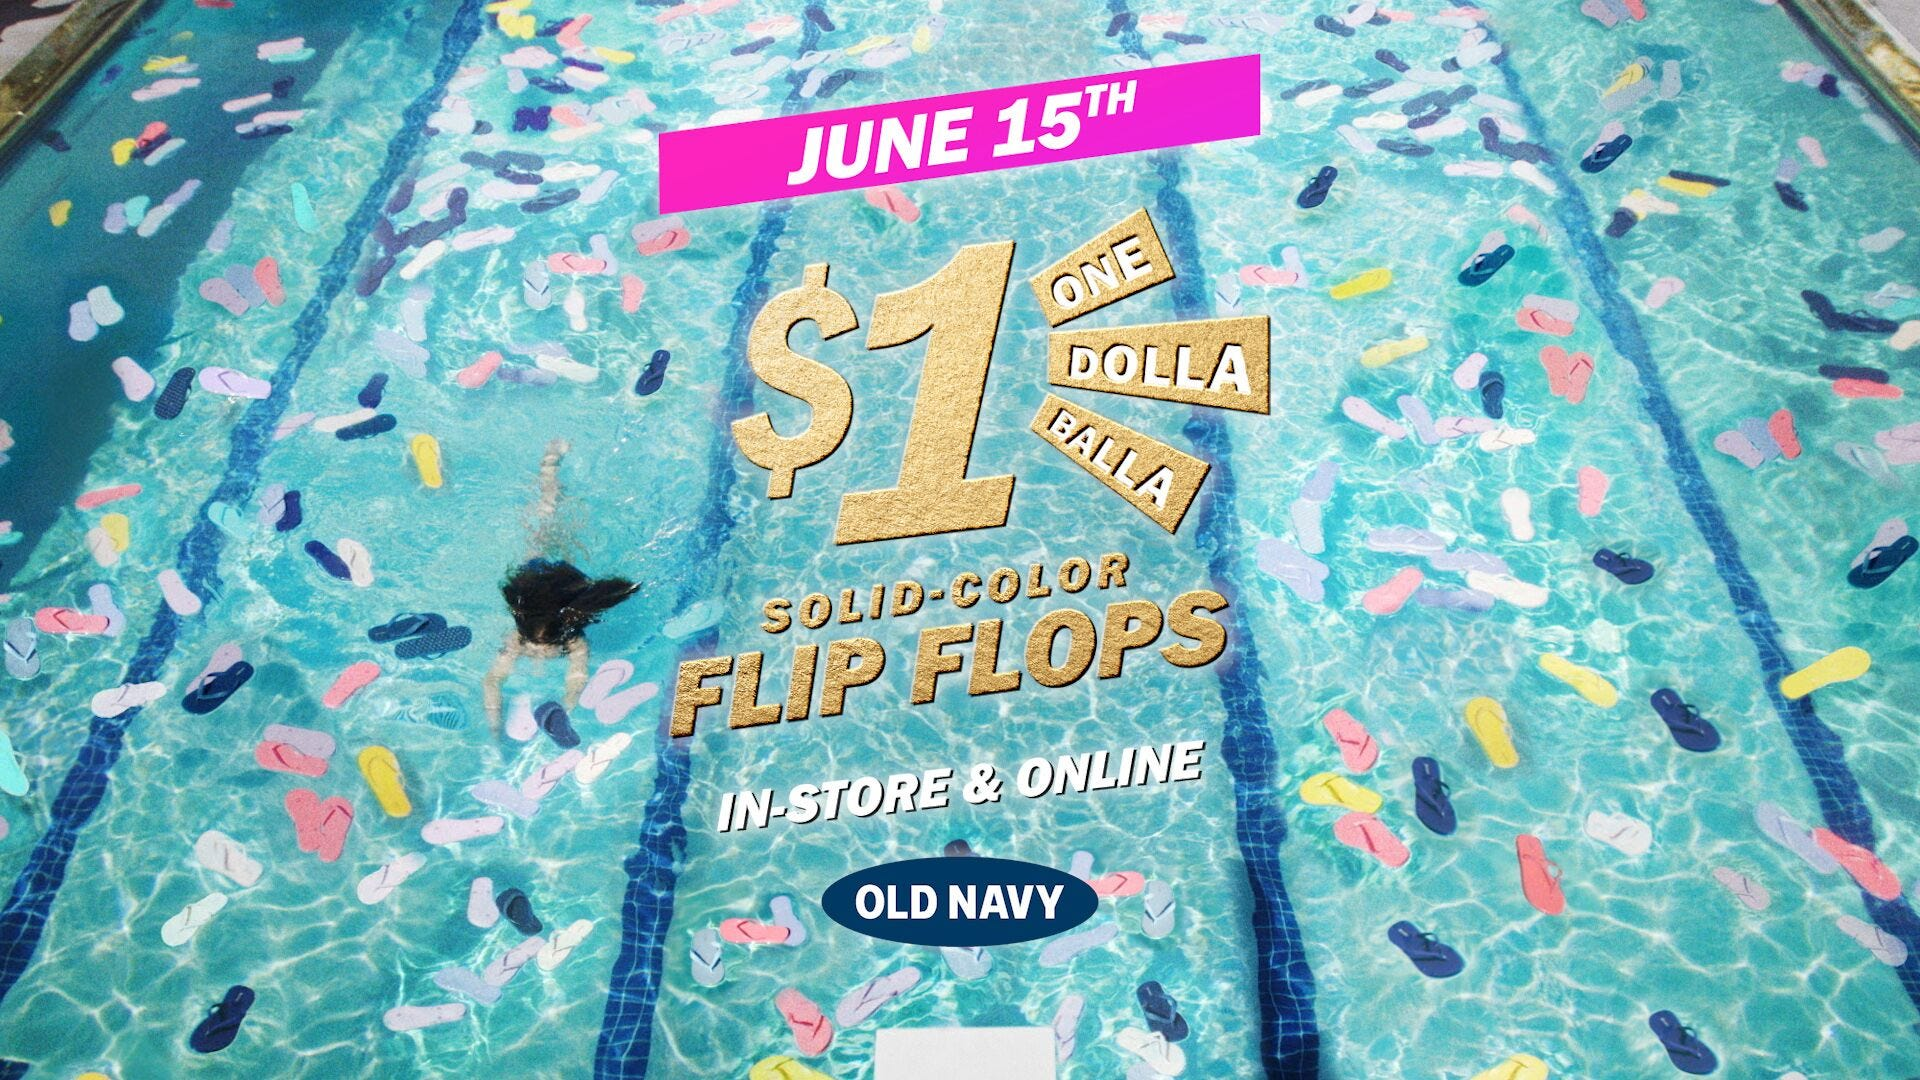 Old Navy flip flops: The annual $1 sale